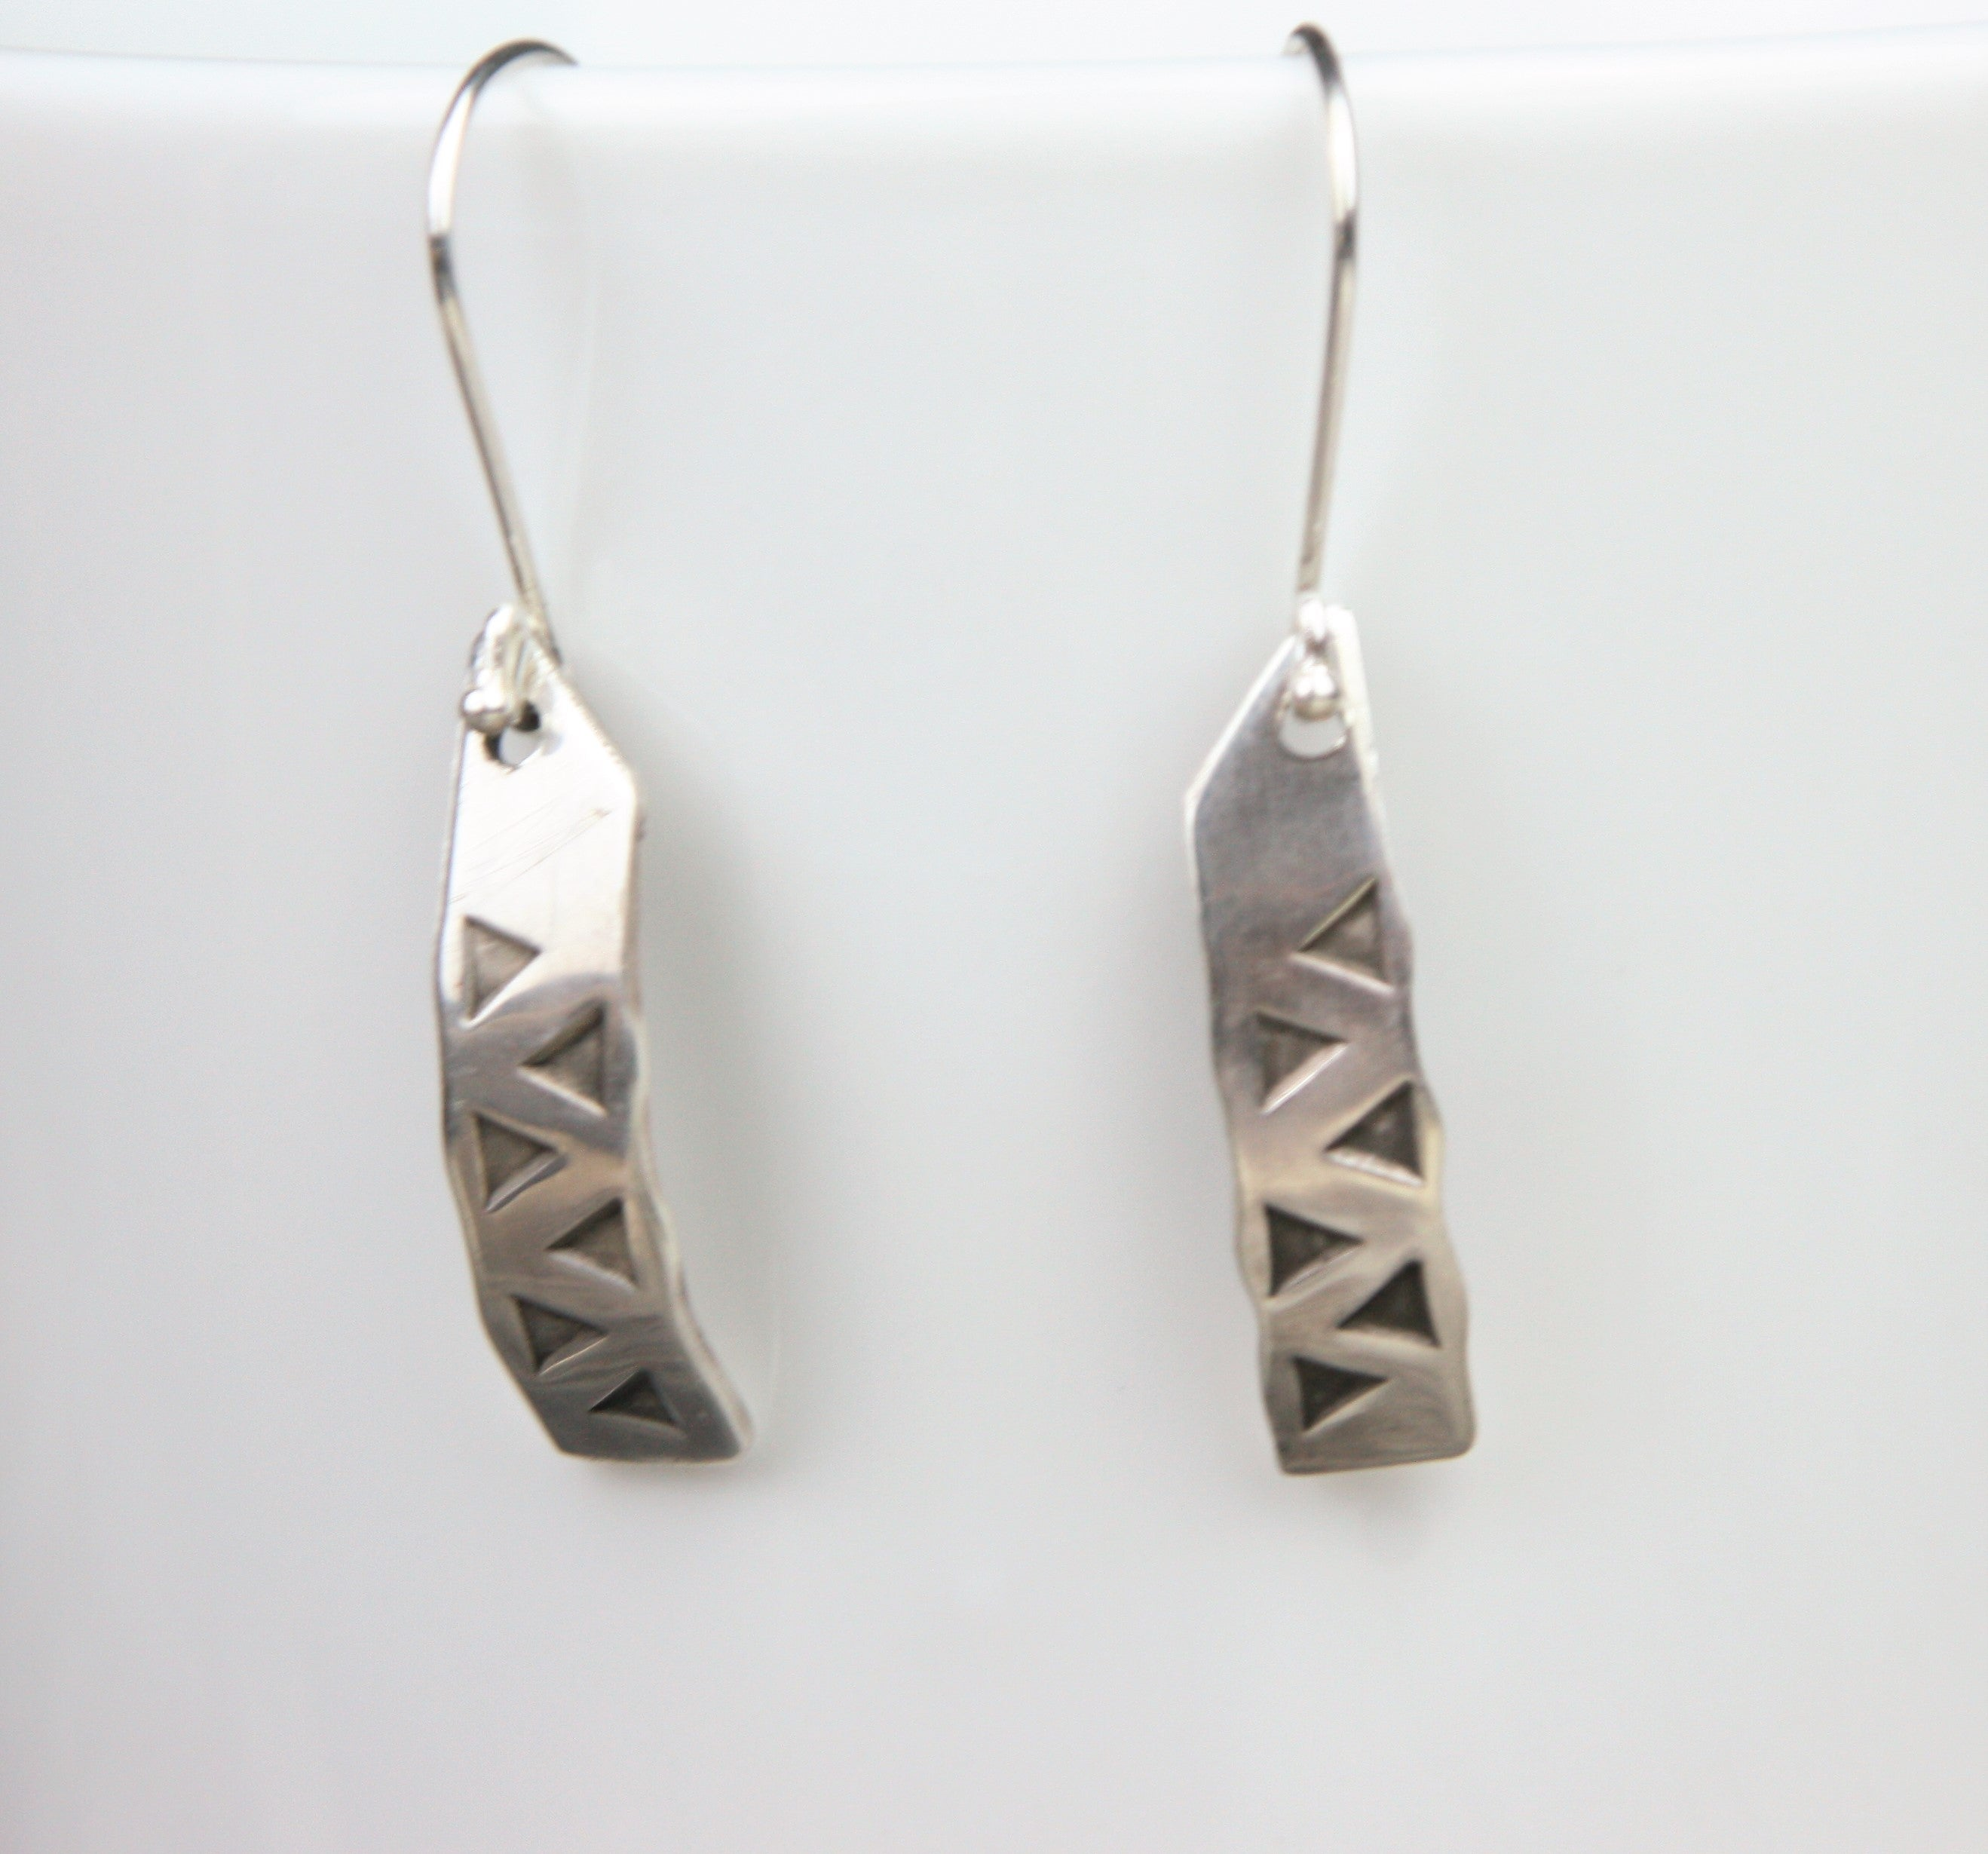 Hack silver earrings in sterling silver